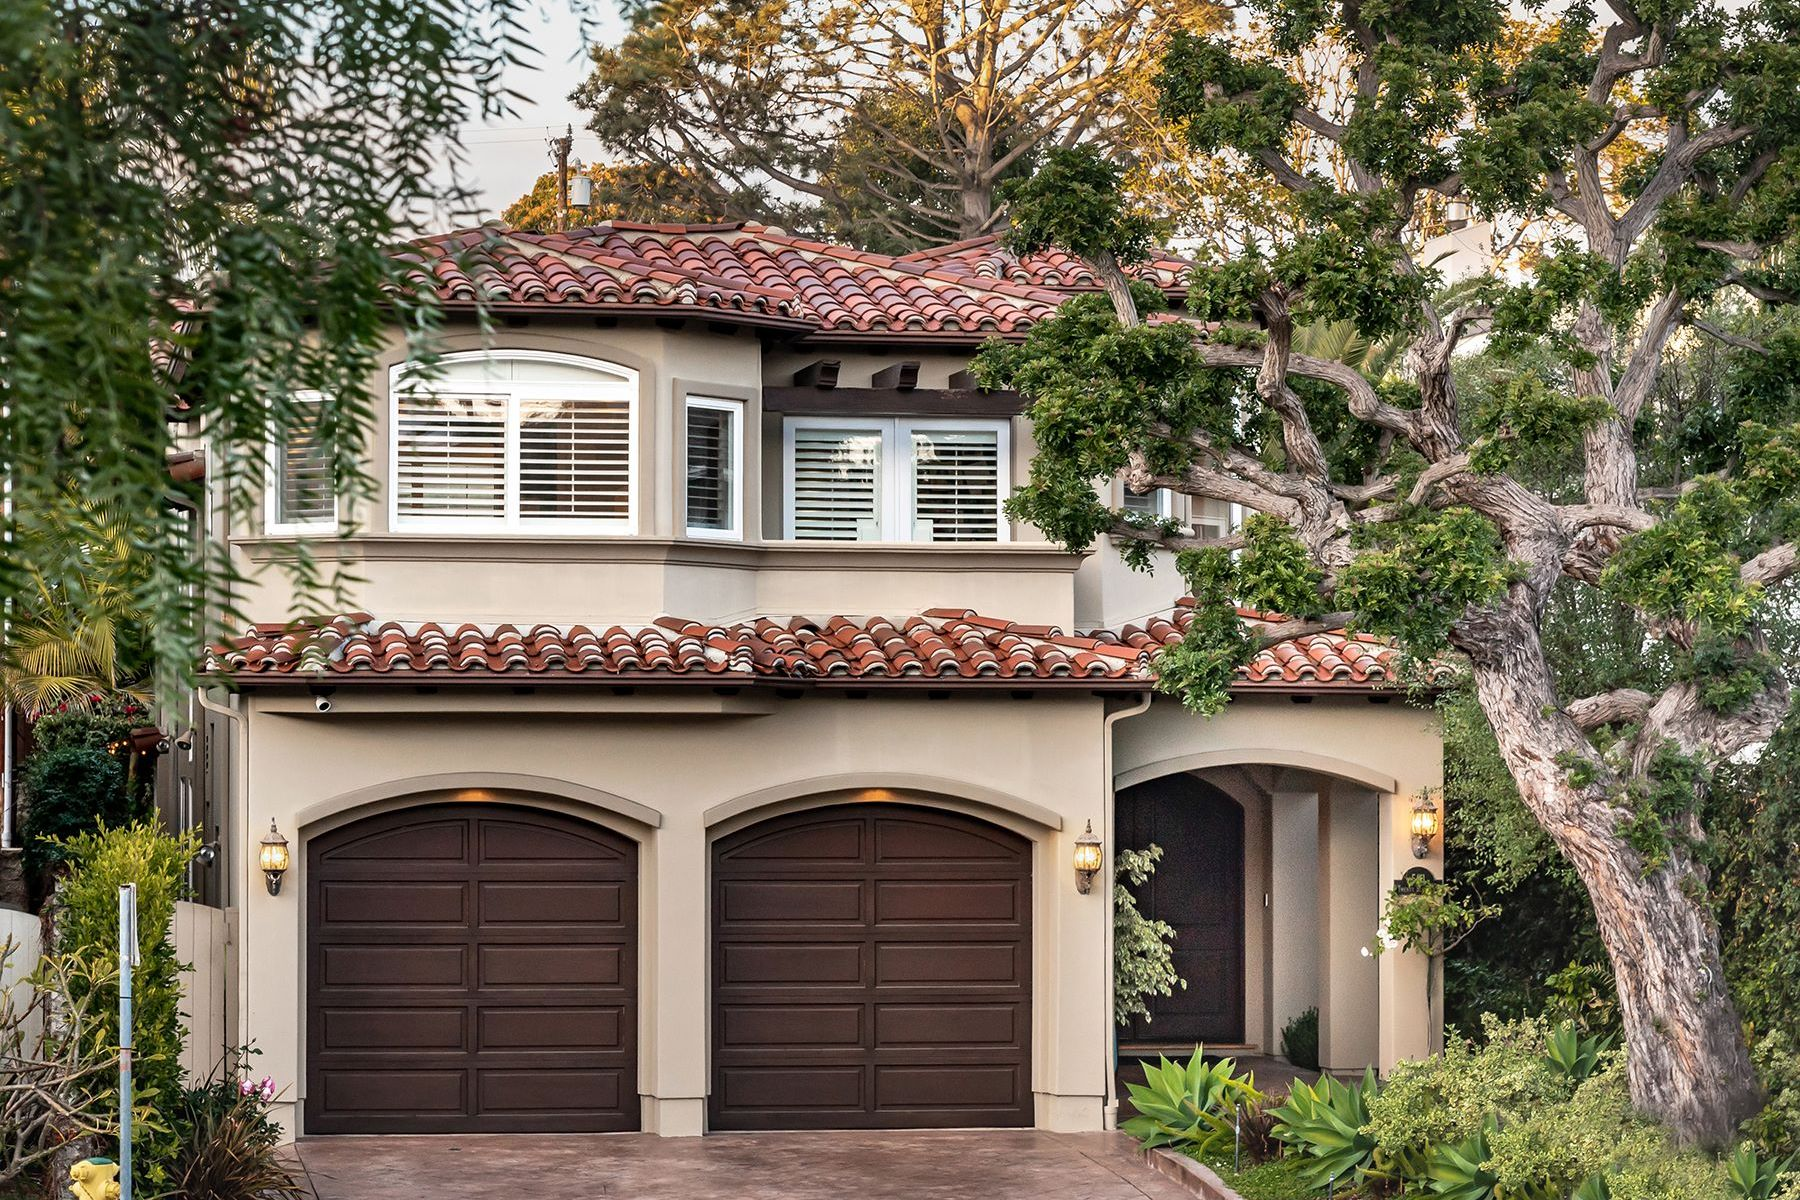 Single Family Homes for Sale at 591 26th Street, Manhattan Beach, CA 90266 591 26th Street Manhattan Beach, California 90266 United States